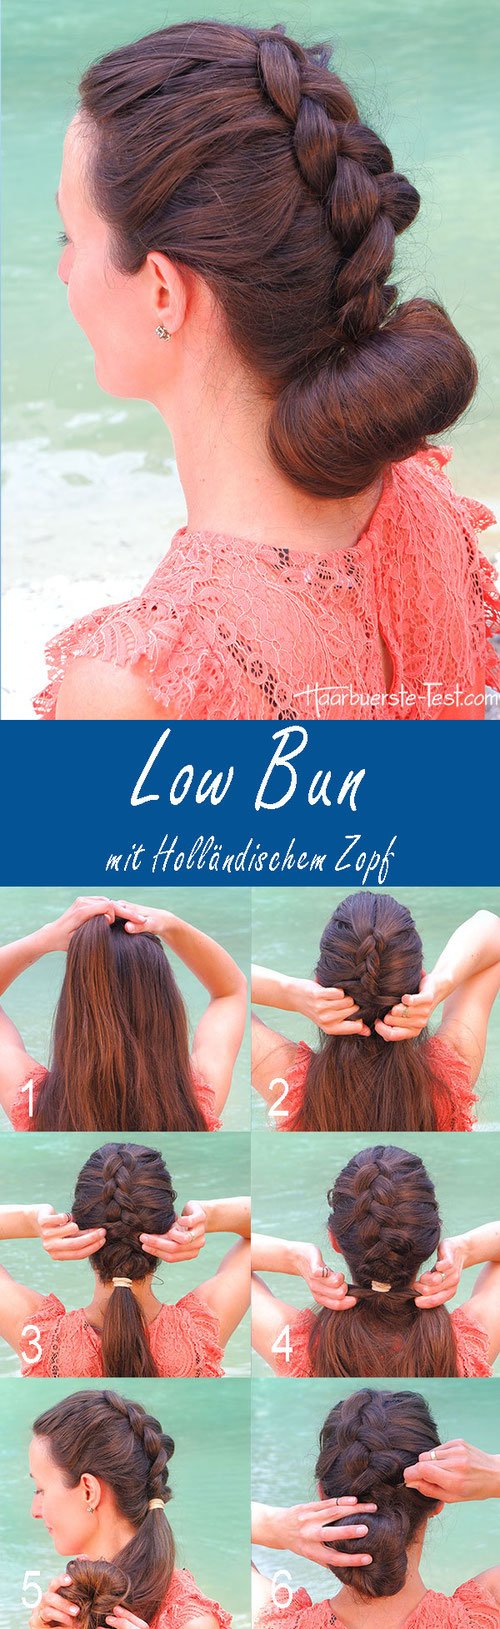 Low Bun Anleitung, Low Bun Tutorial